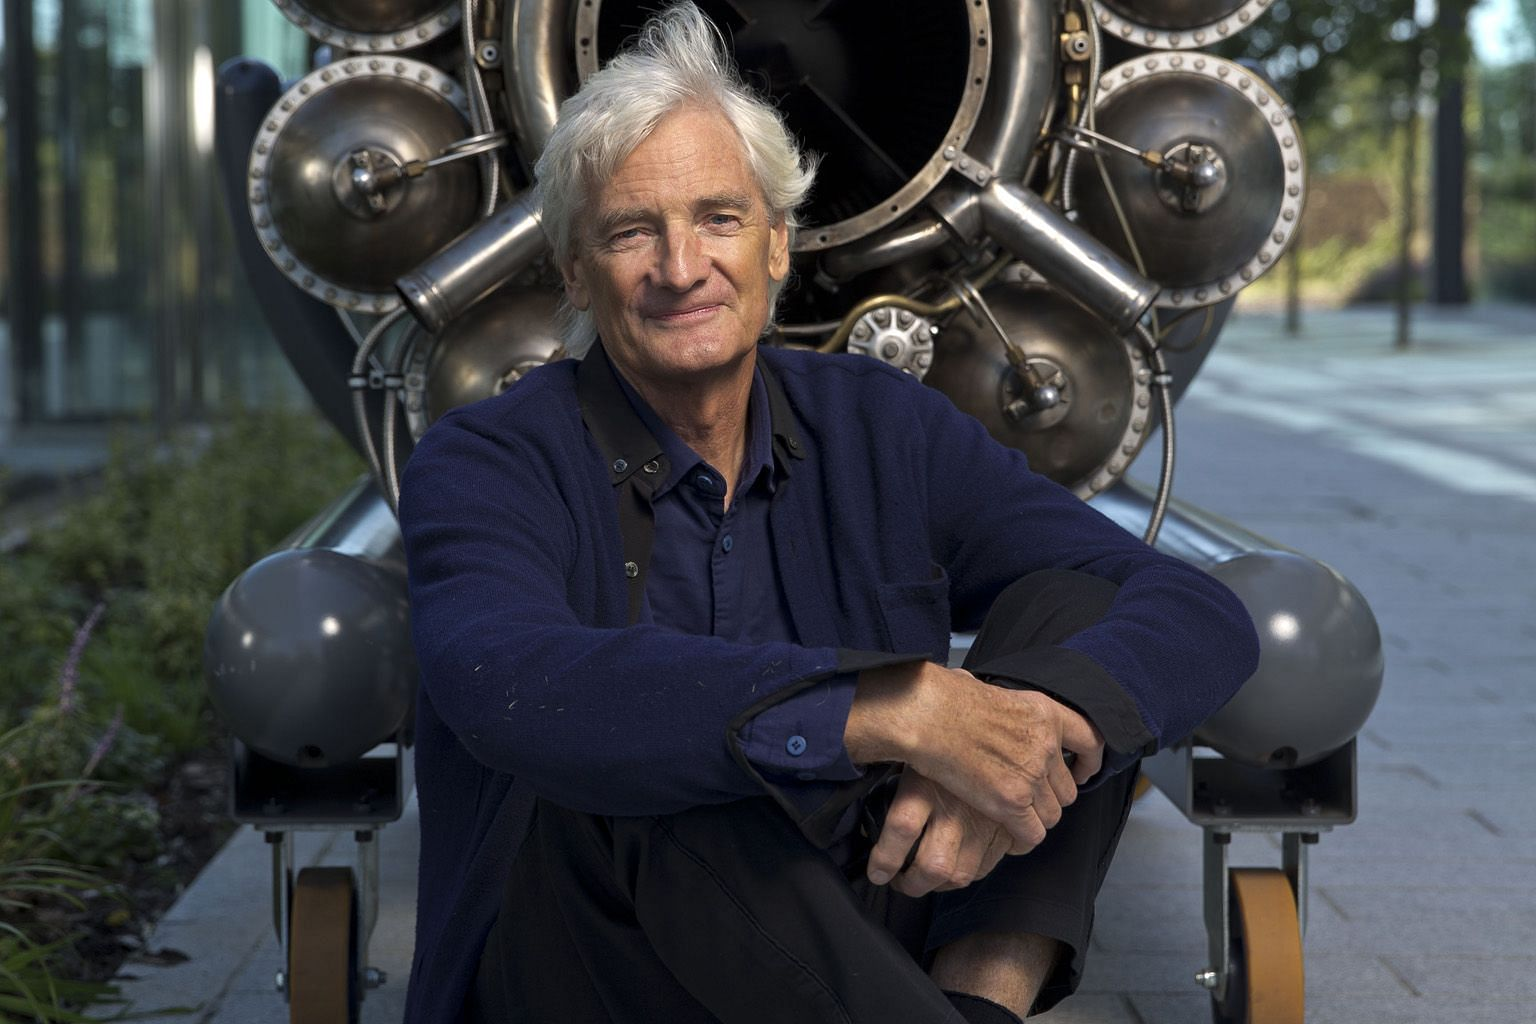 Mr James Dyson, the billionaire founder of electrical appliance giant Dyson, earlier this year decided to relocate the company's head office to Singapore from Britain. His family office has incorporated in Singapore. PHOTO: DYSON